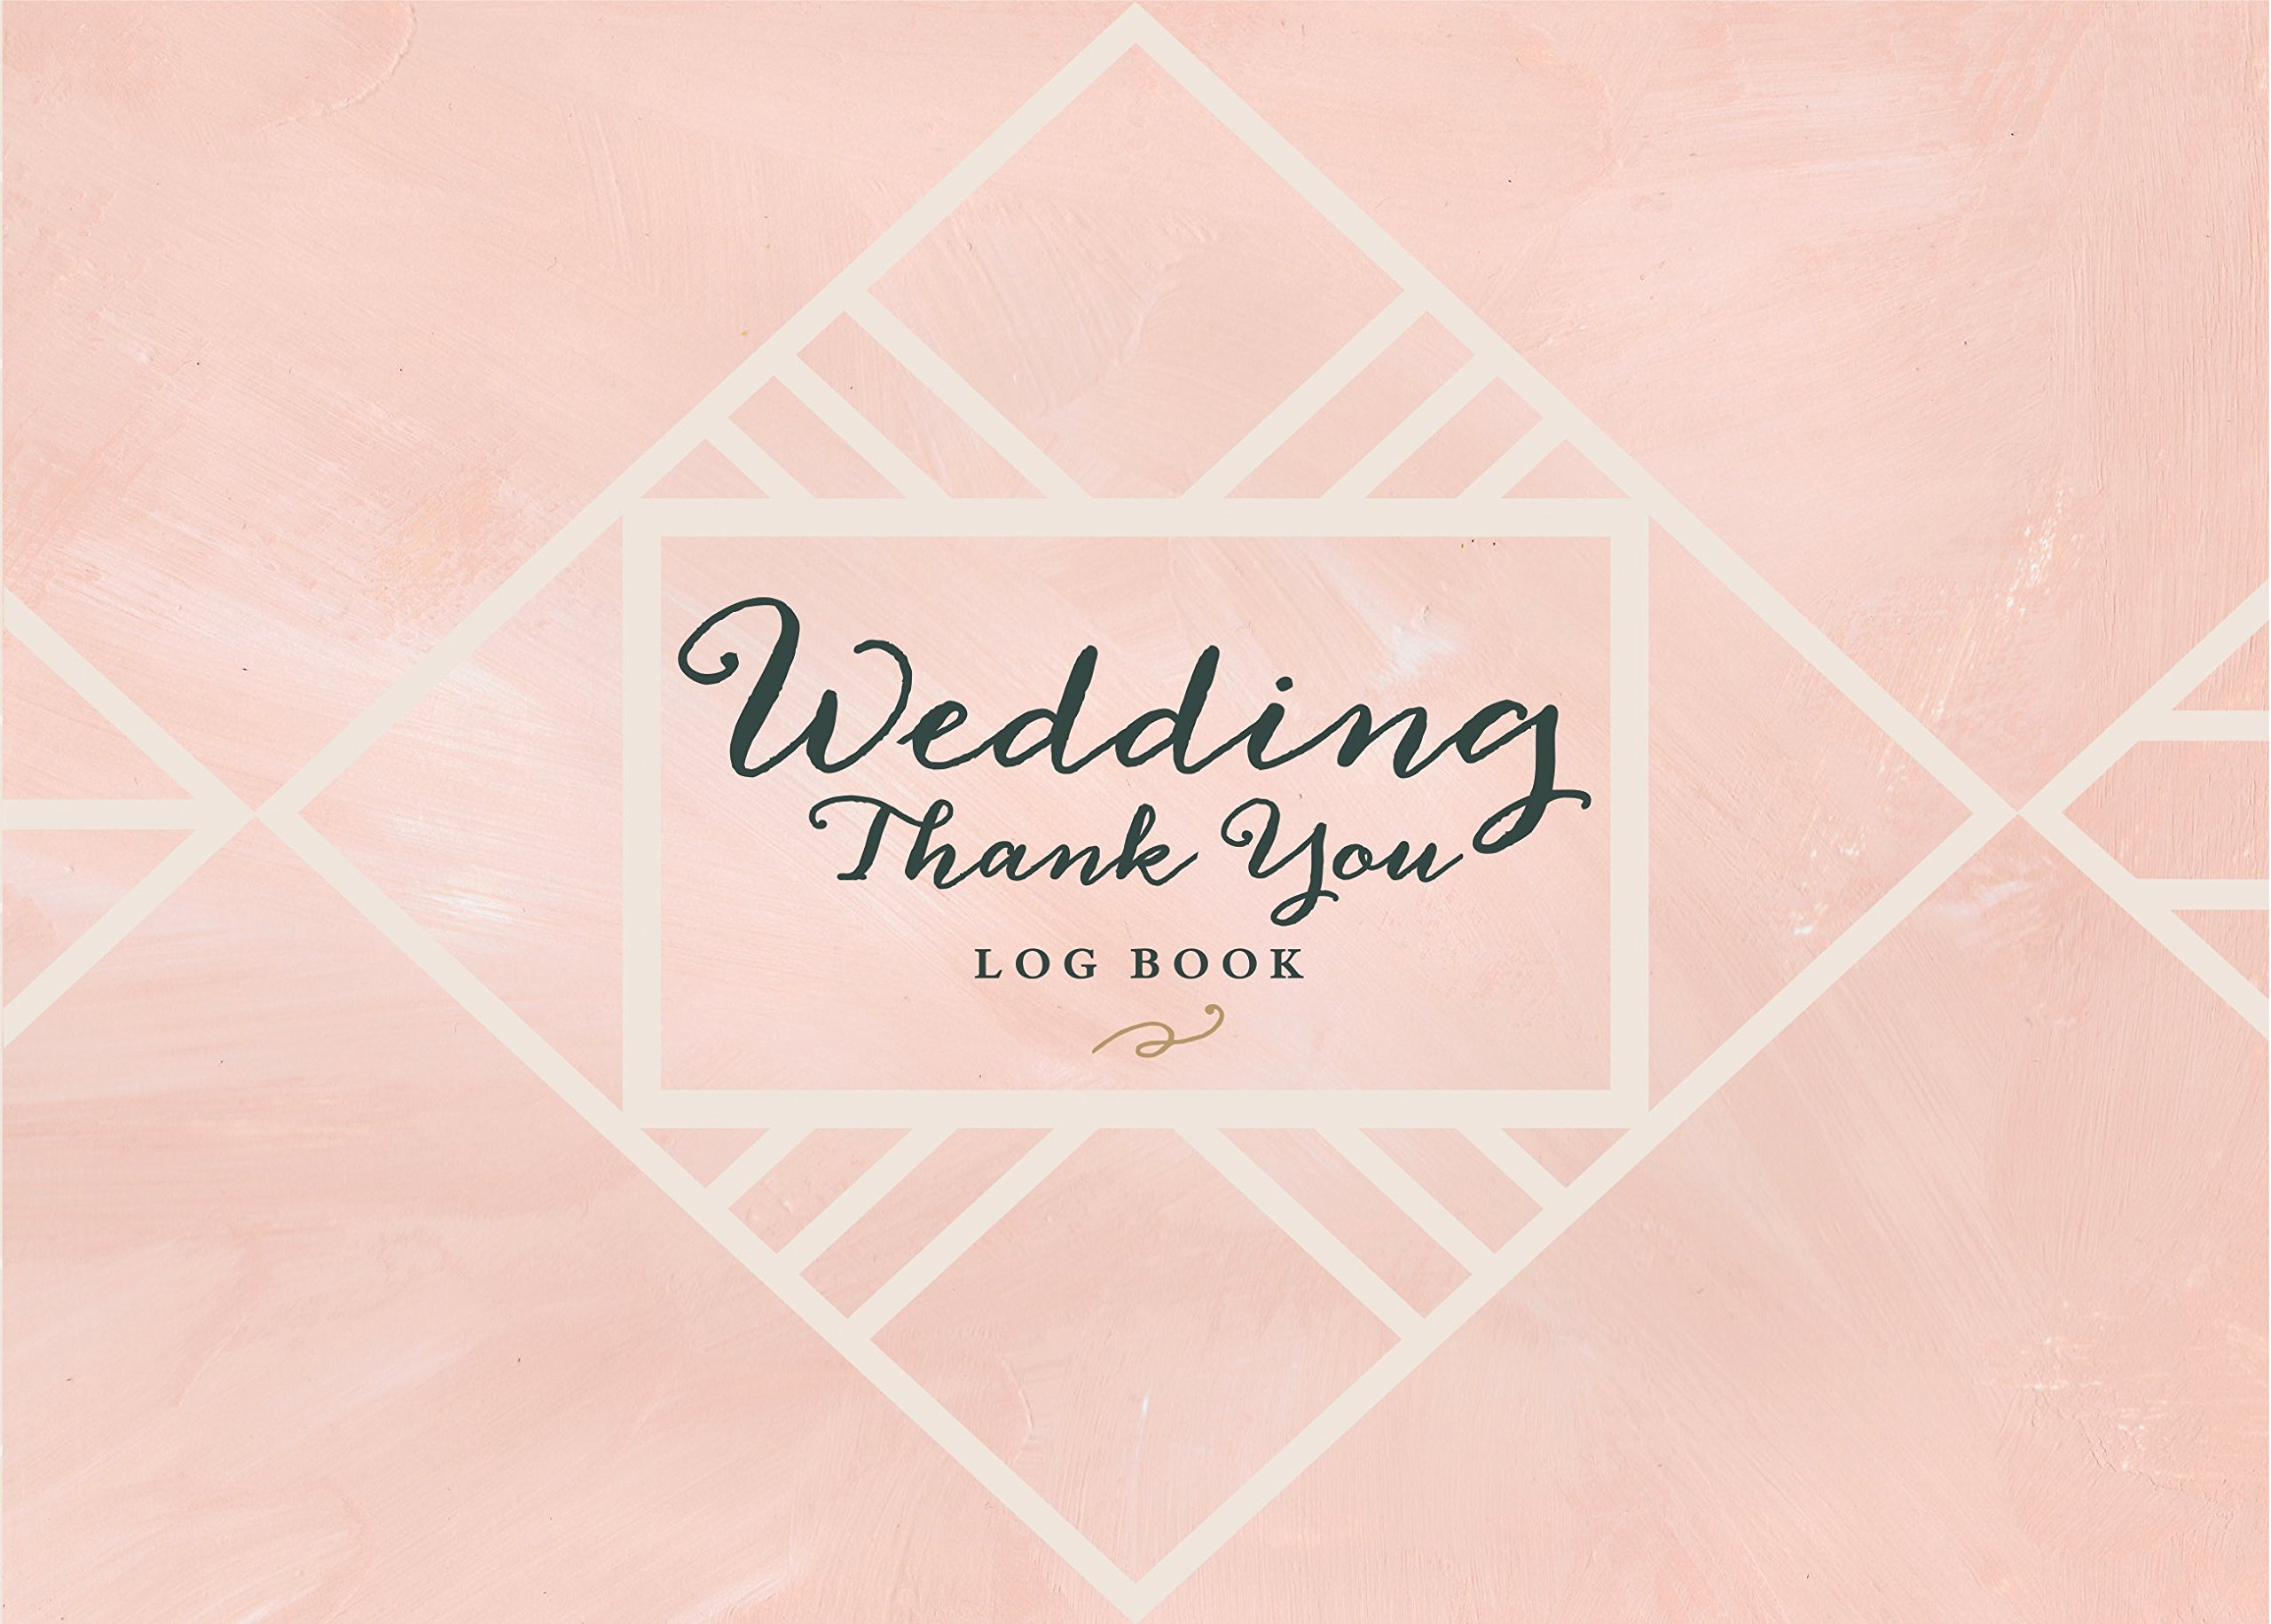 Wedding Thank You Logbook: Keep Track of All the Thoughtful Gifts and Gestures